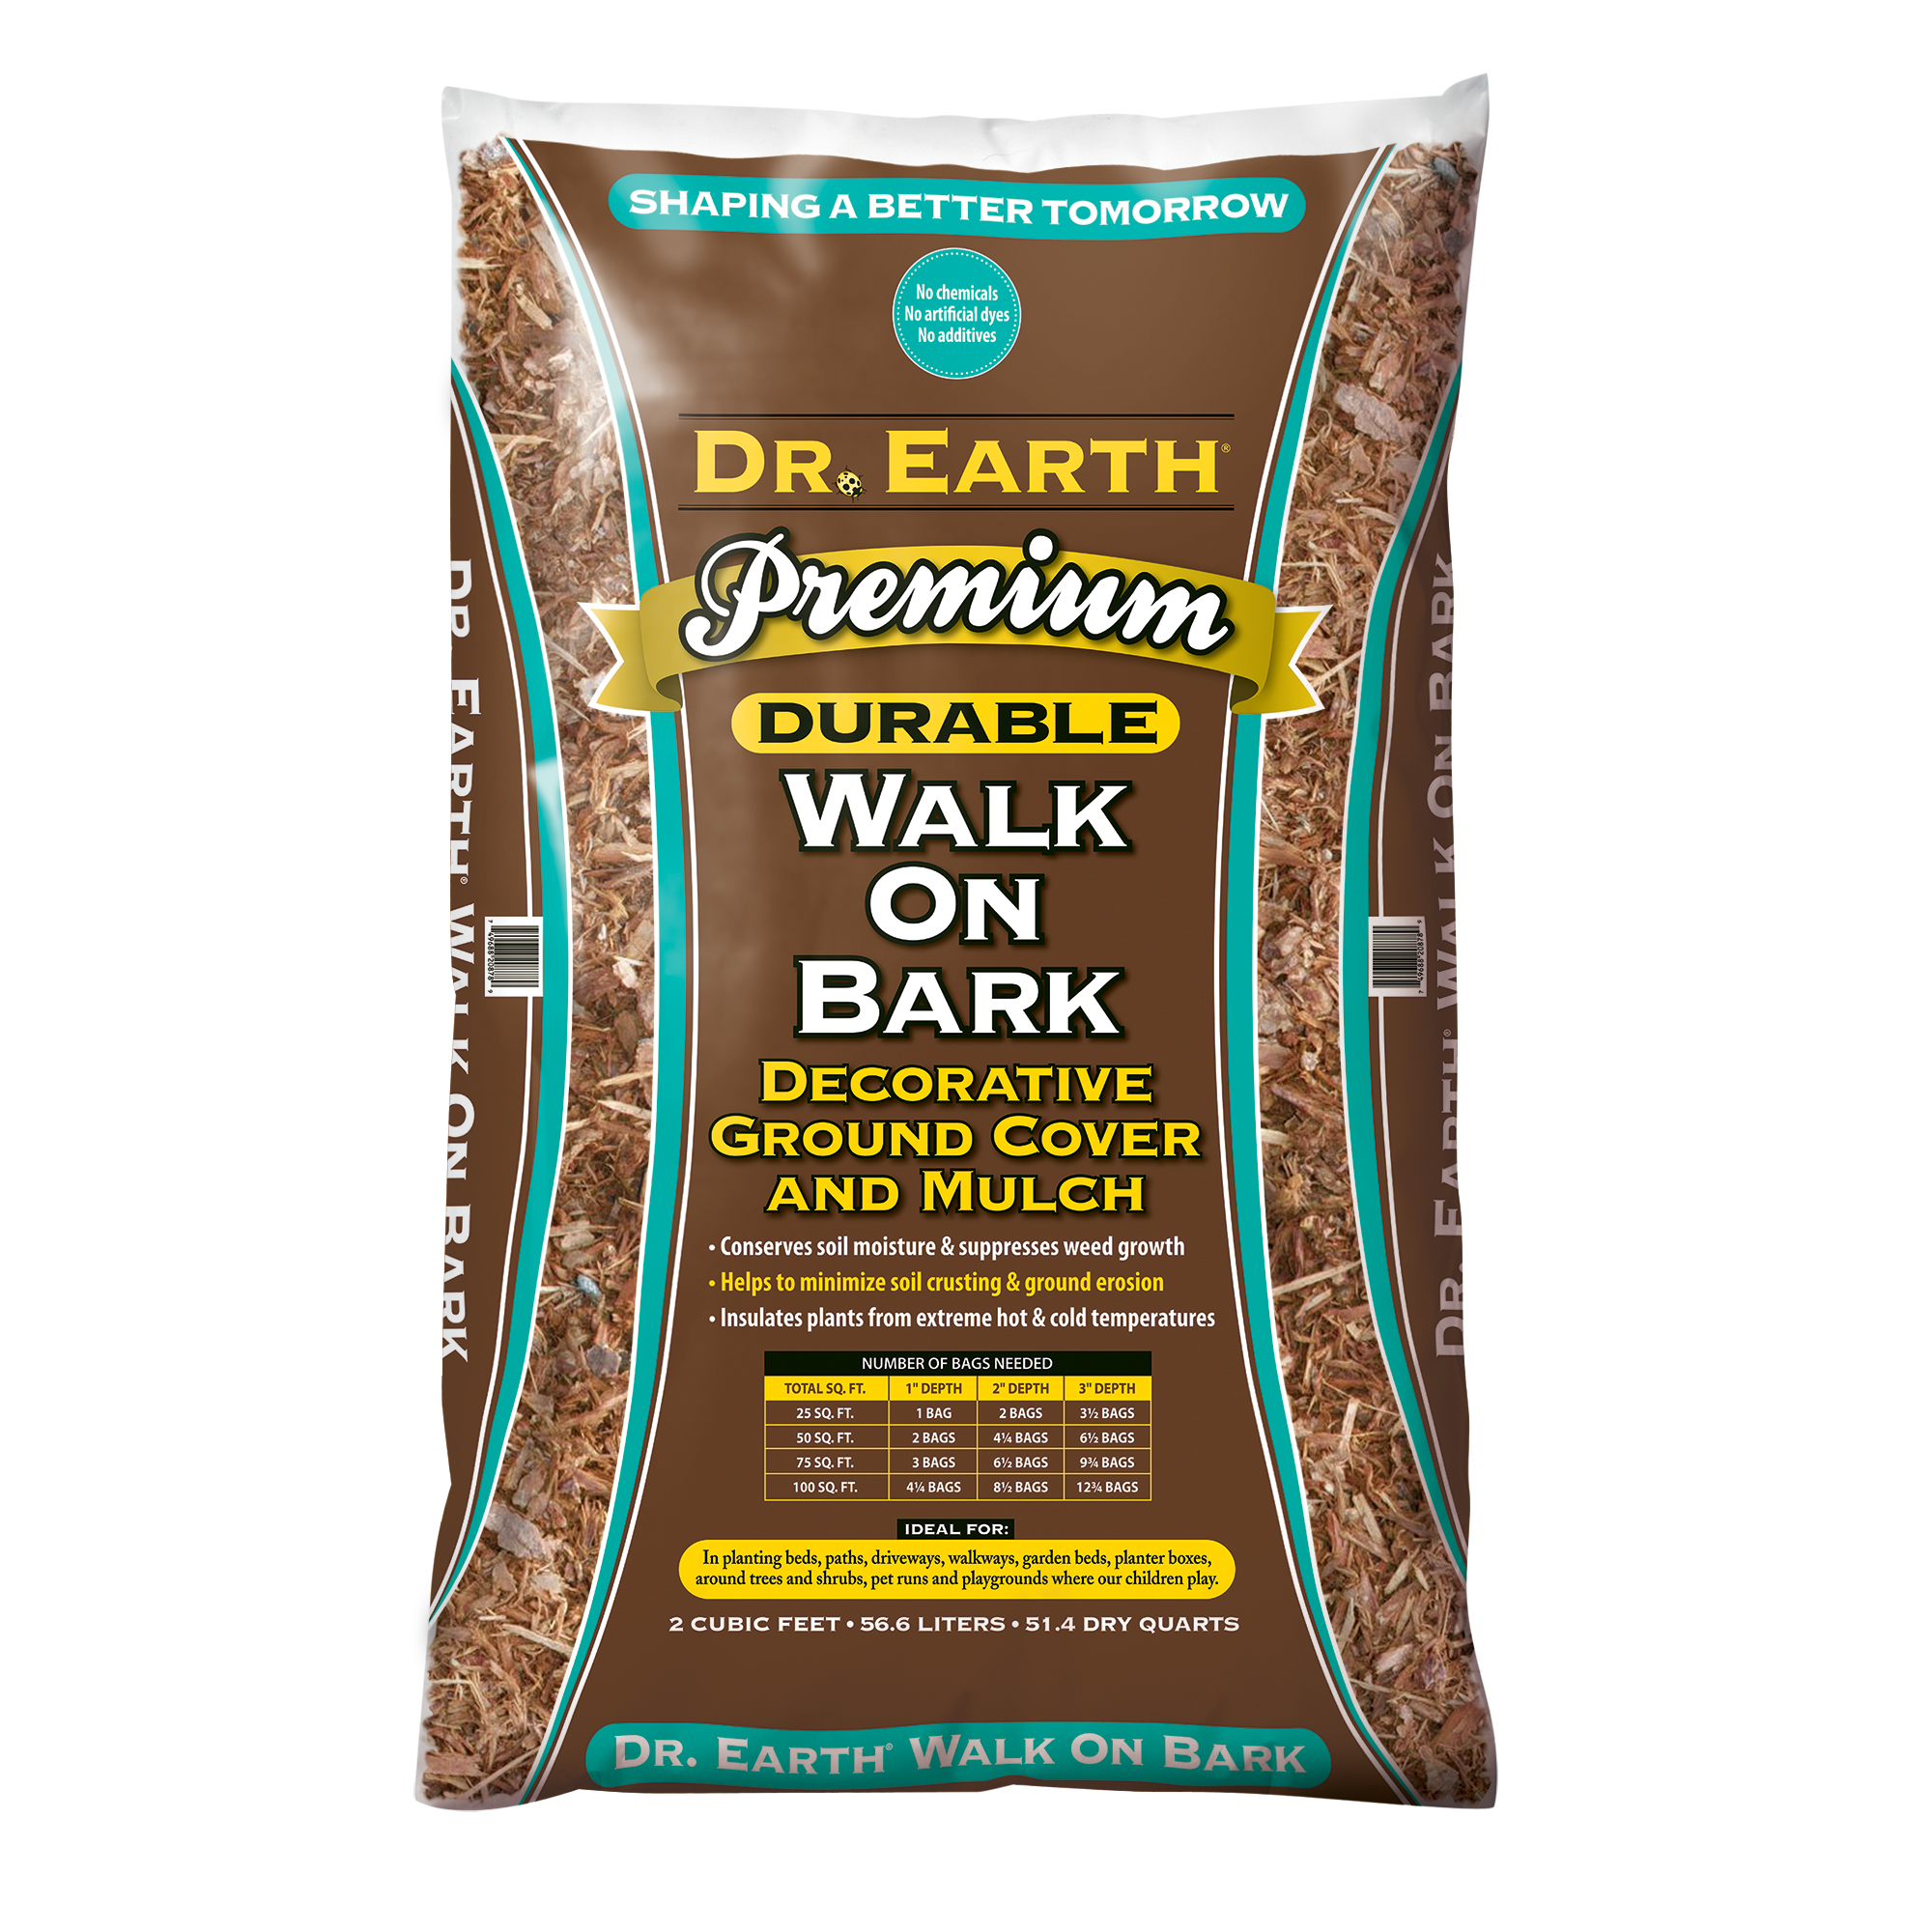 DR. EARTH PREMIUM WALK ON BARK DECORATIVE GROUND COVER AND MULCH